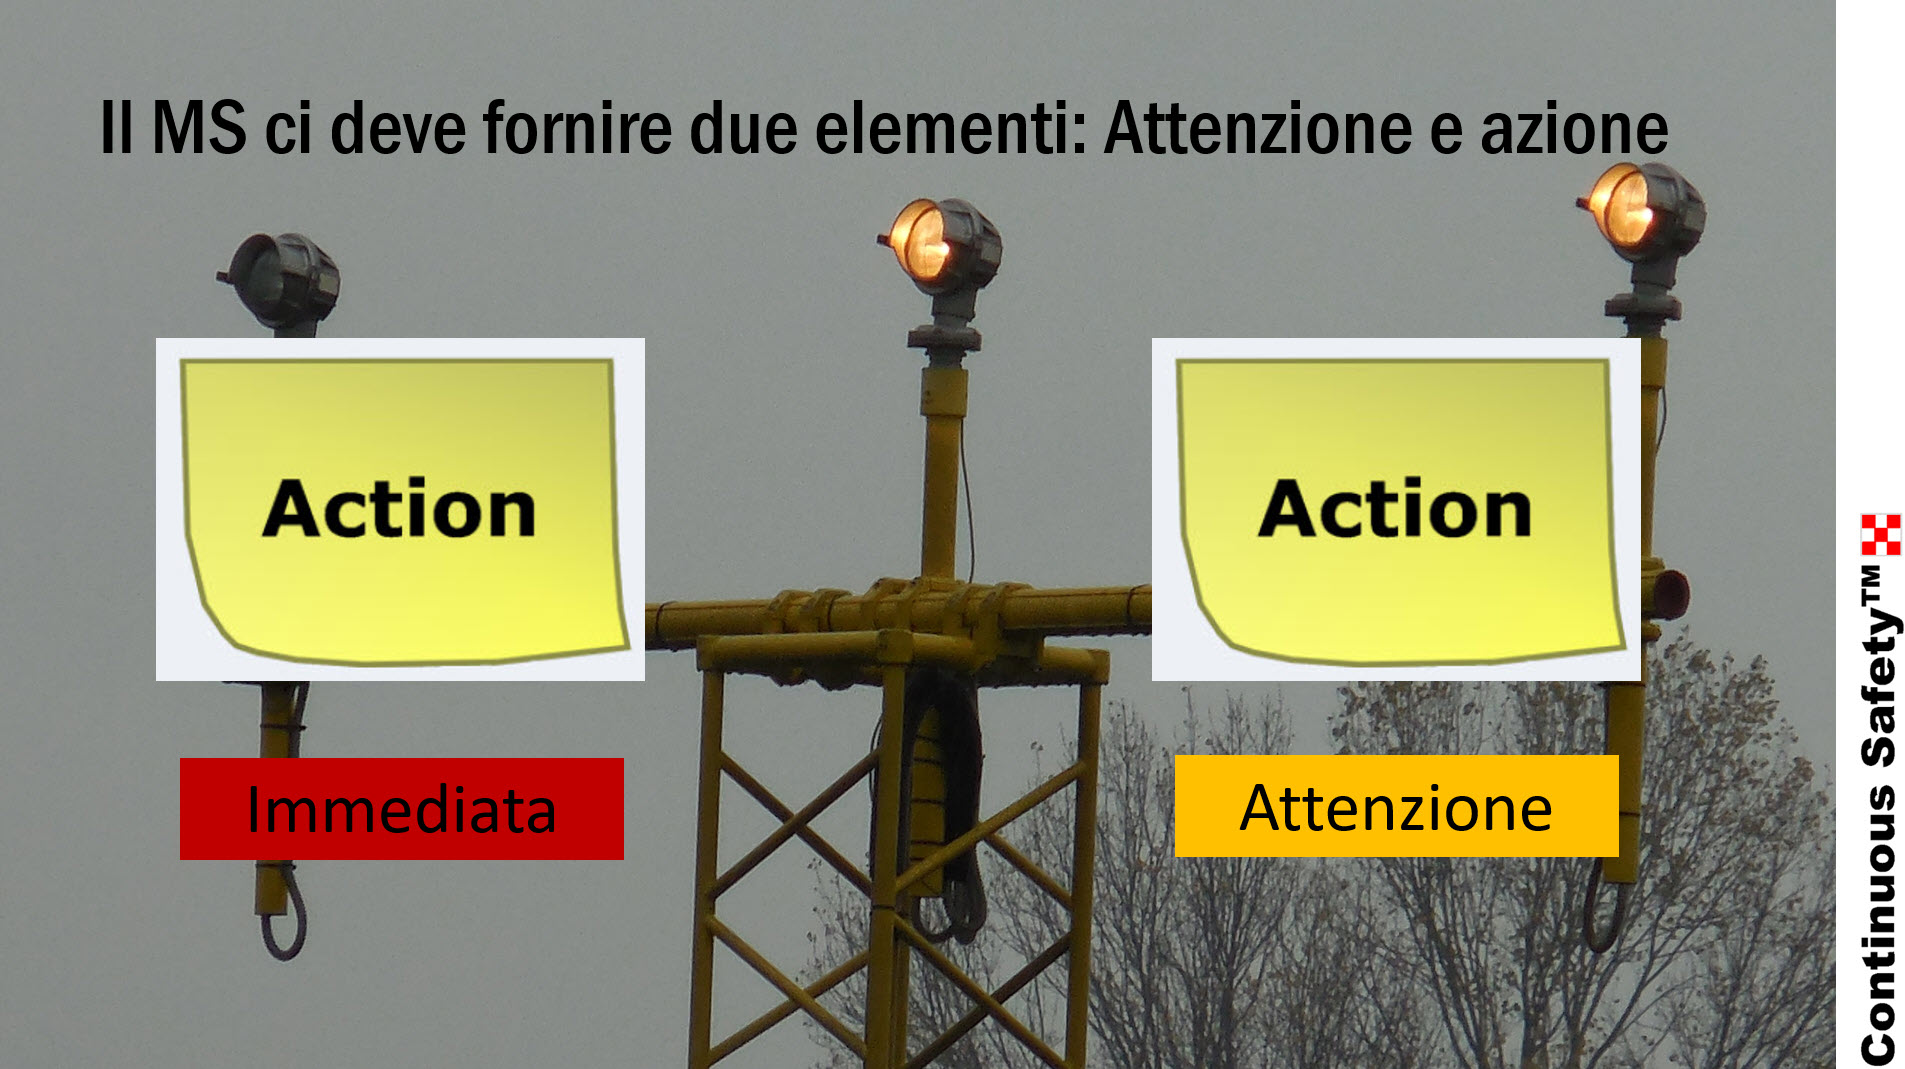 Action and attention mycs.swiss